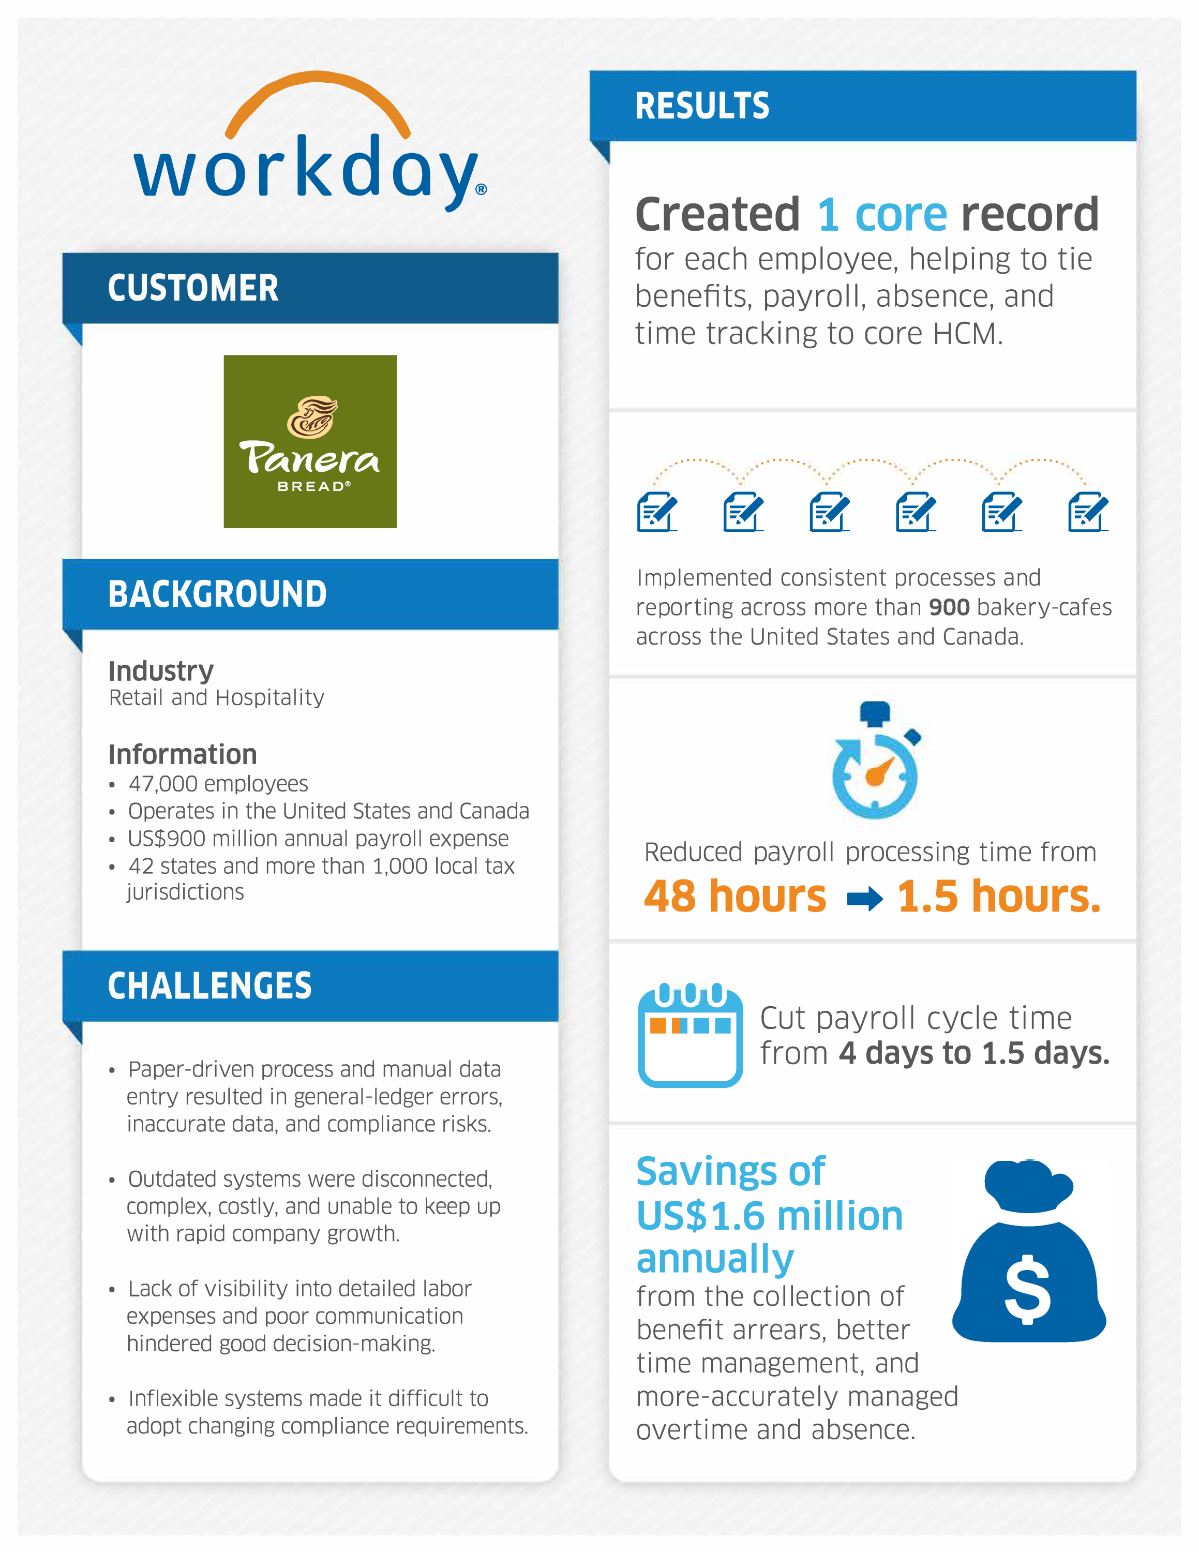 Panera Bread reduces payroll cycle time with Workday.